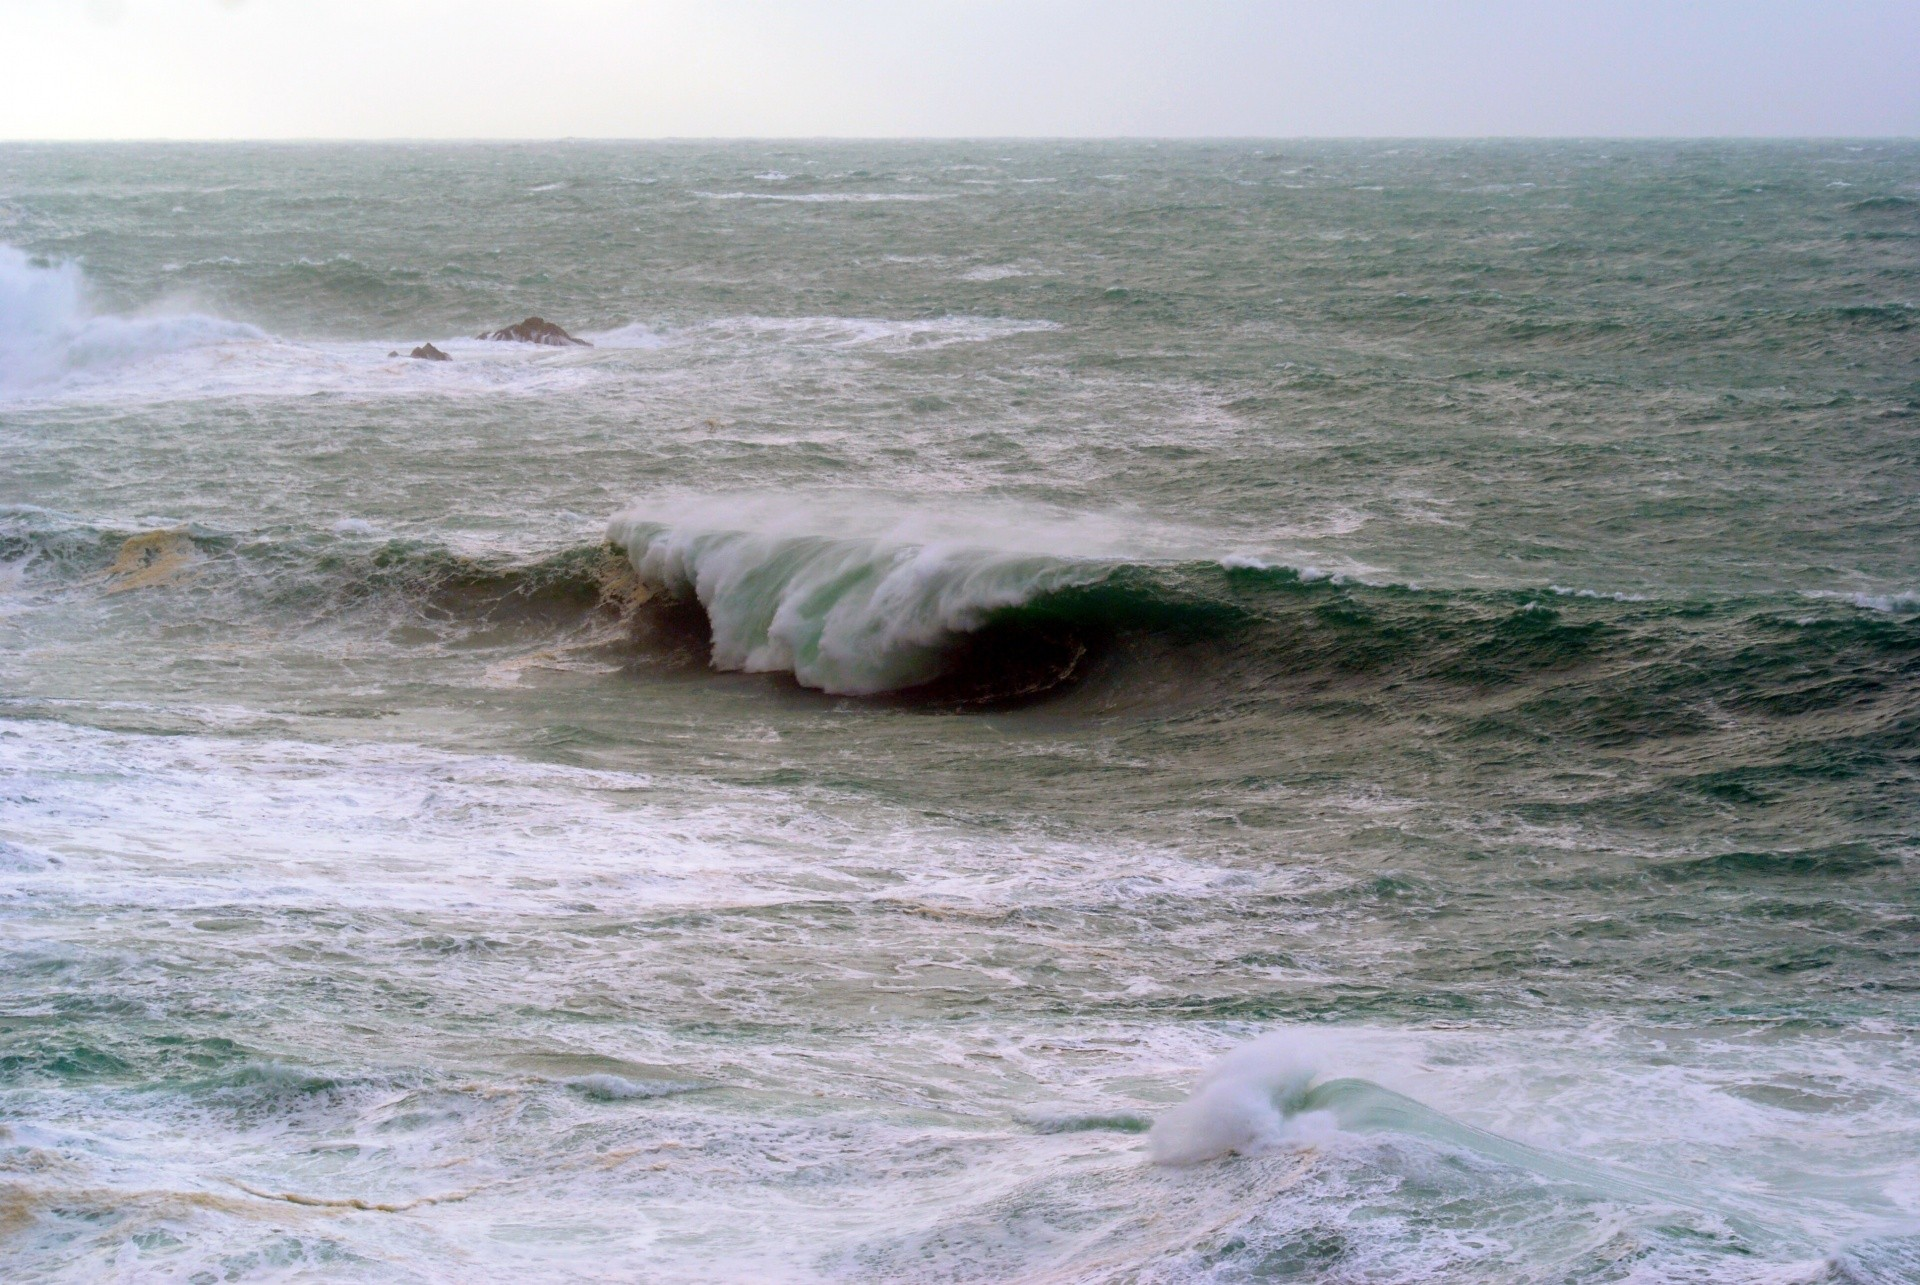 Poontang surfer's photo of Newquay - Fistral North